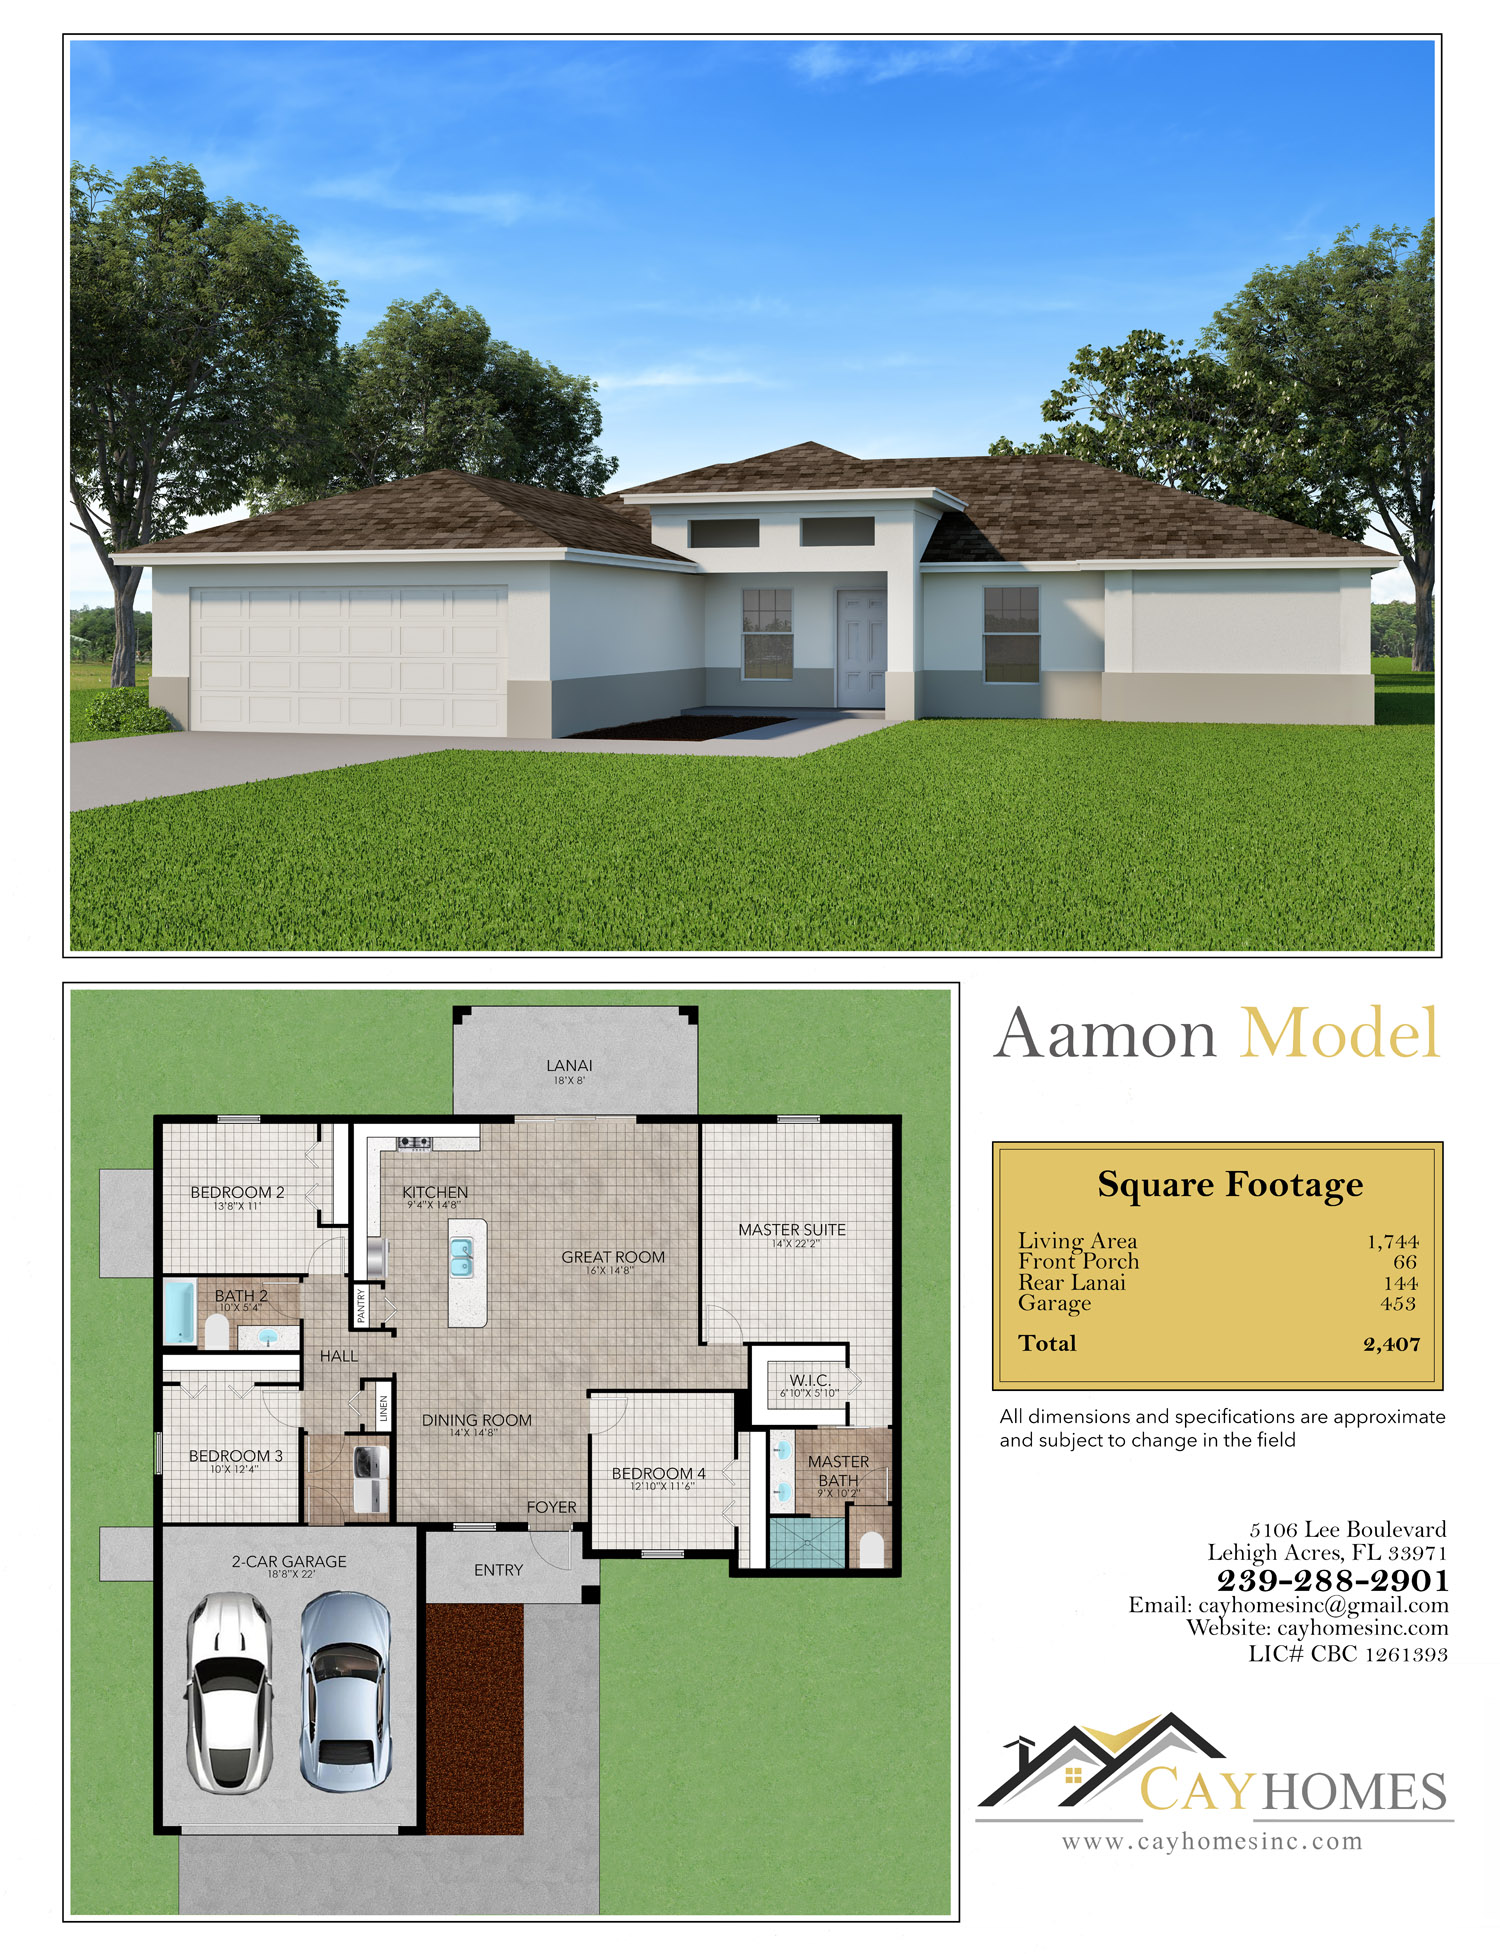 Aamon Model by Cay Homes